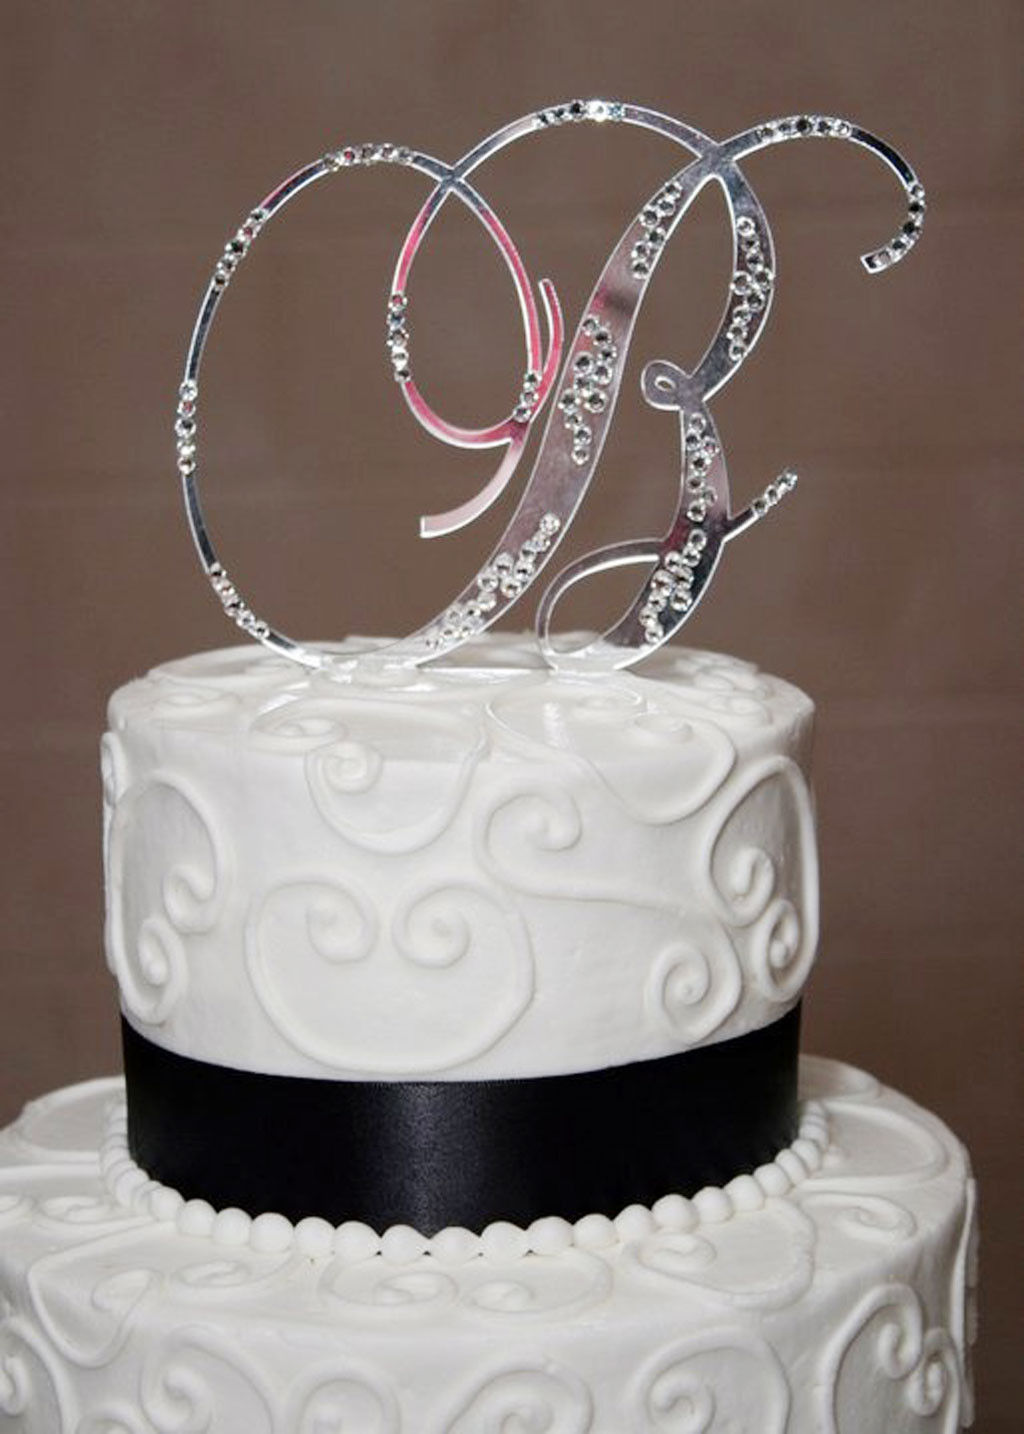 Initial Cake Toppers For Wedding Cakes  Initial B Wedding Bling Cake Topper Wedding Cake Cake